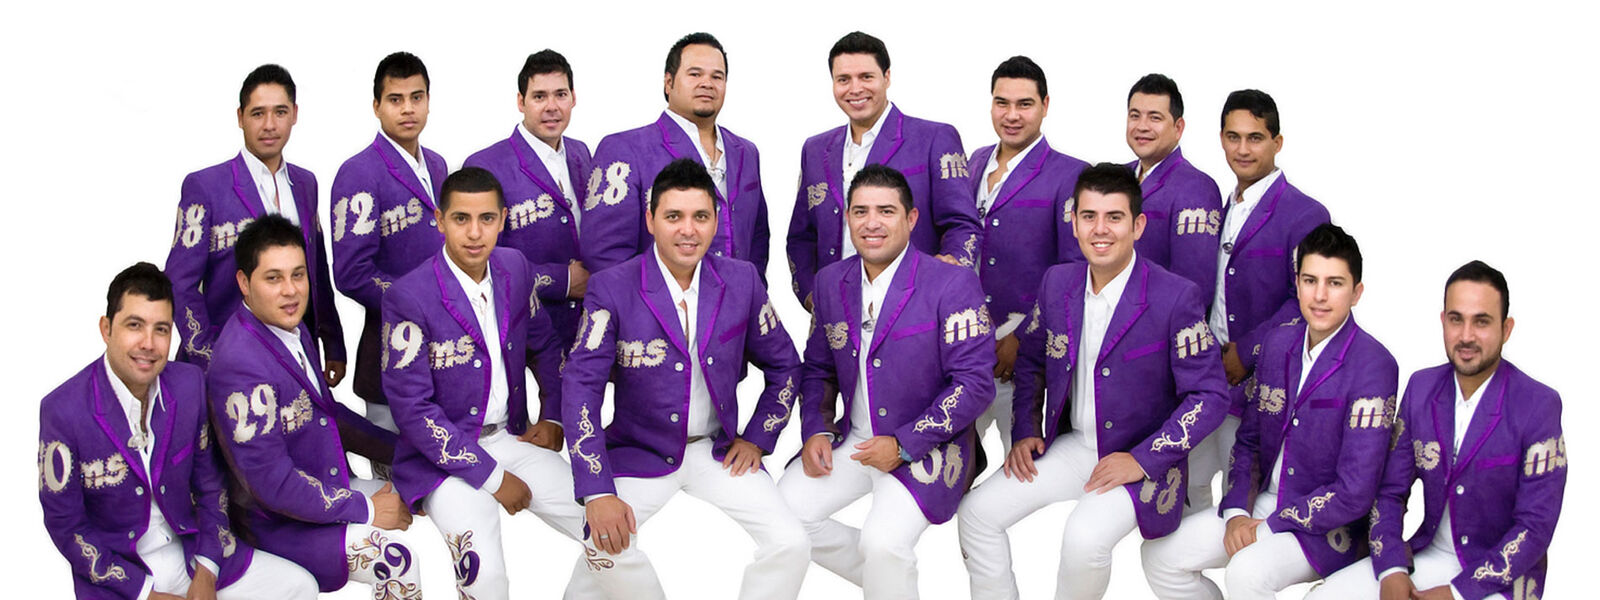 PARKING PASSES ONLY Banda MS